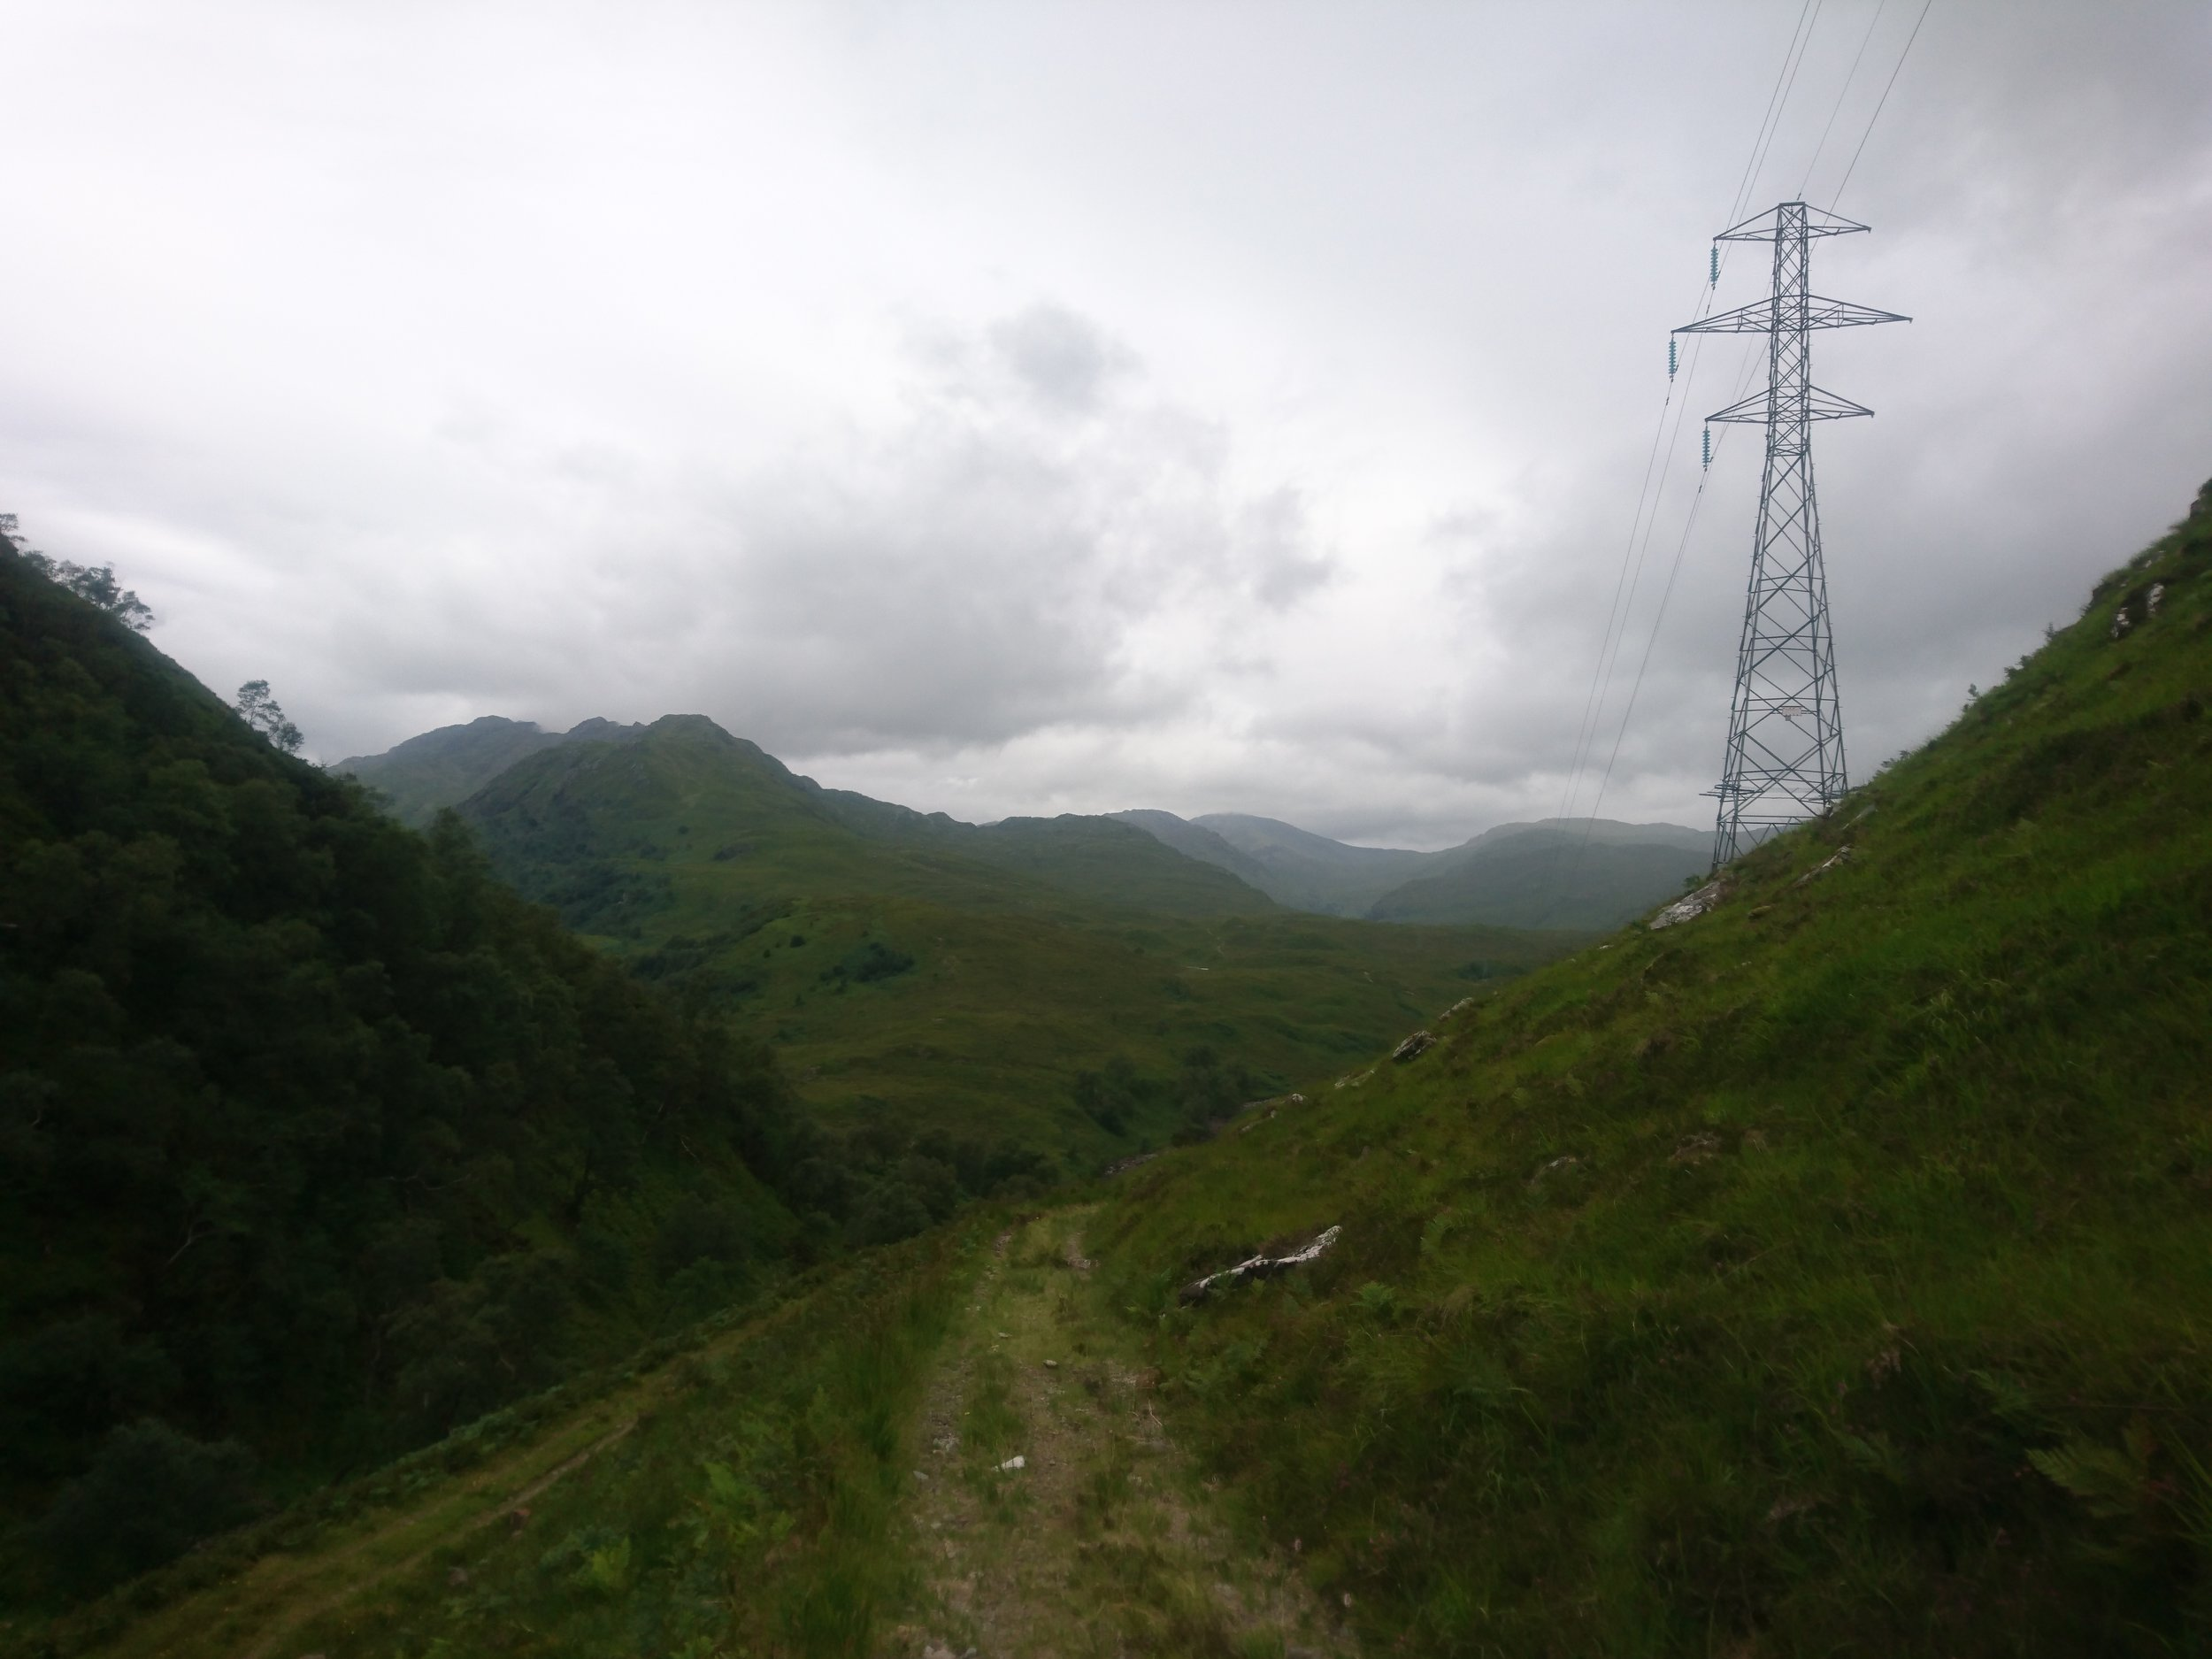 Following the Pylons